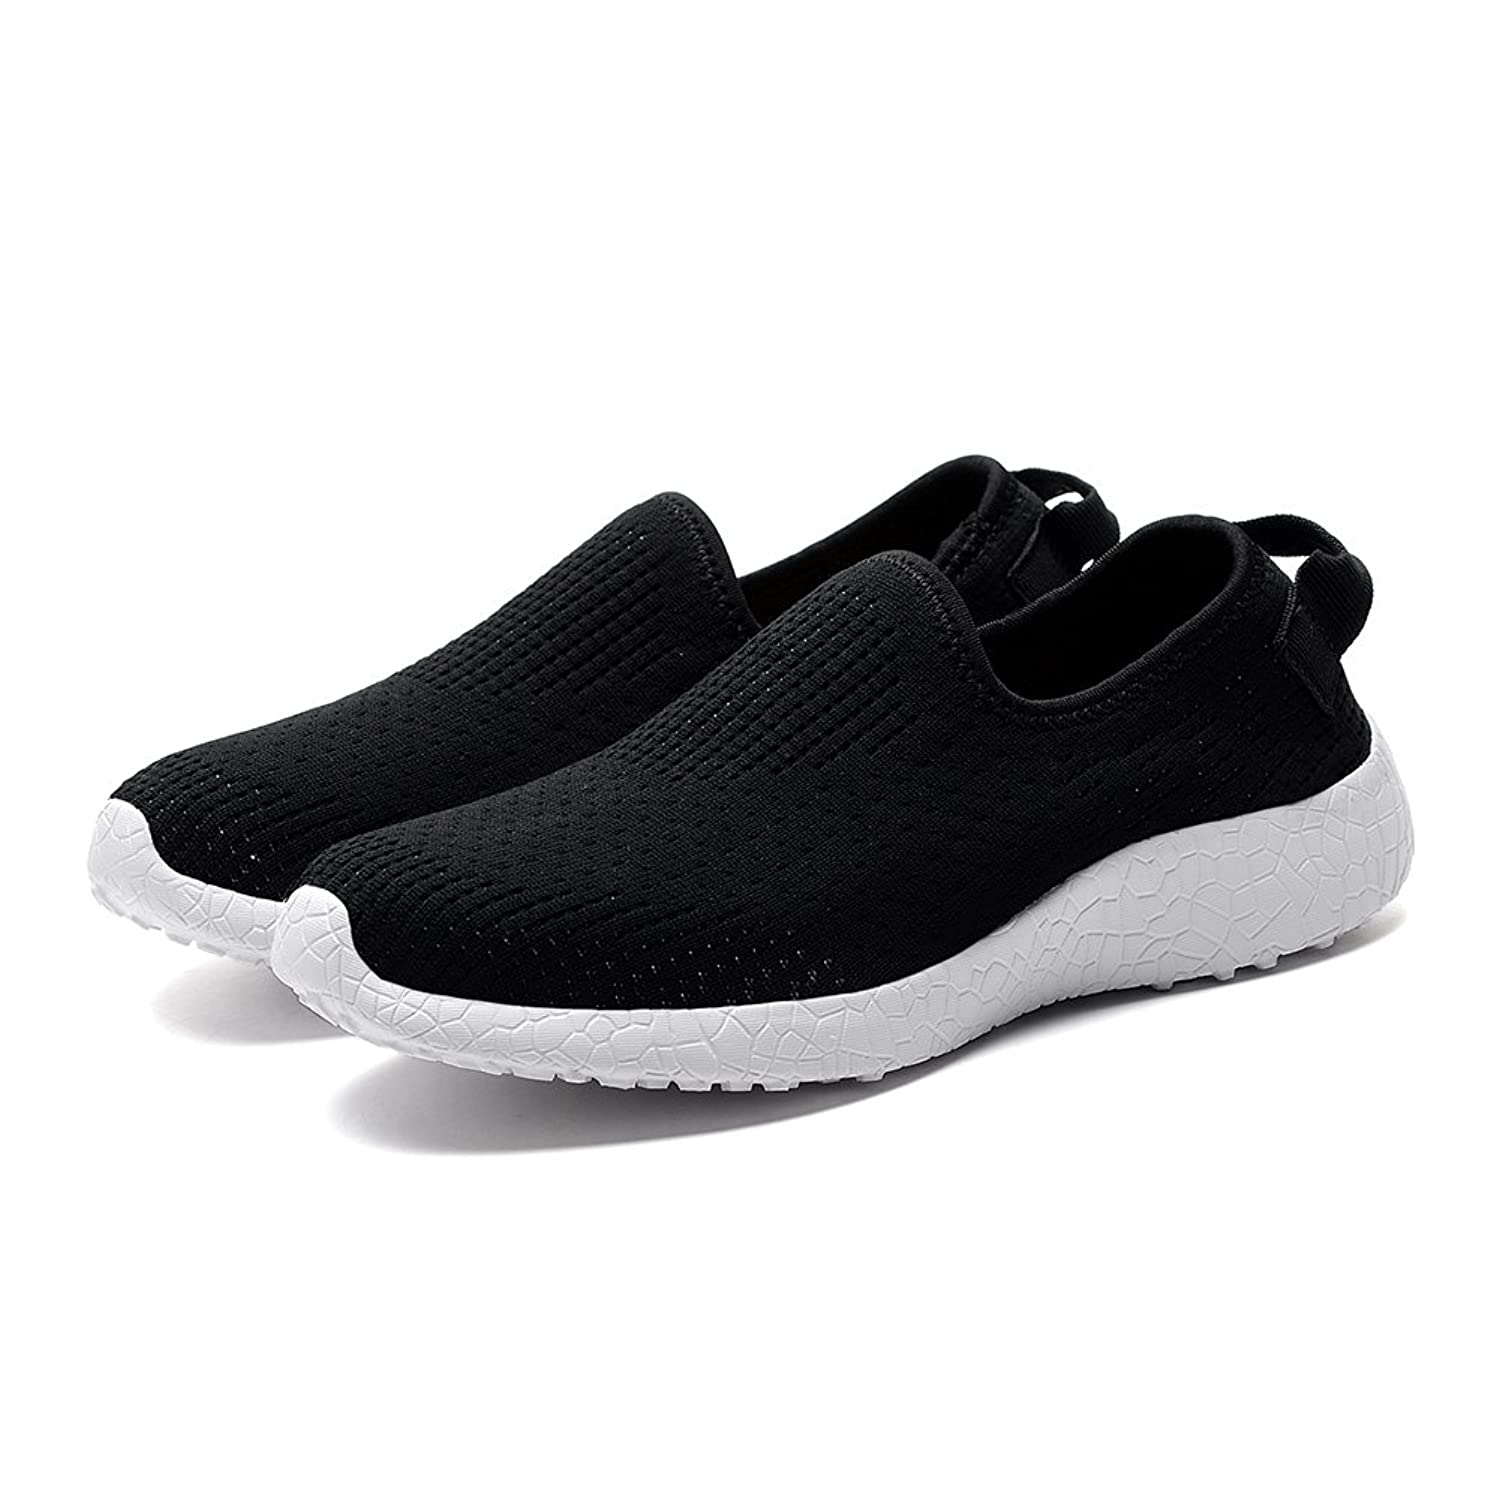 KONHILL Mens Lightweight Casual Walking Shoes Athletic Breathable Slipon Workout Sneakers  B075V1NBFF